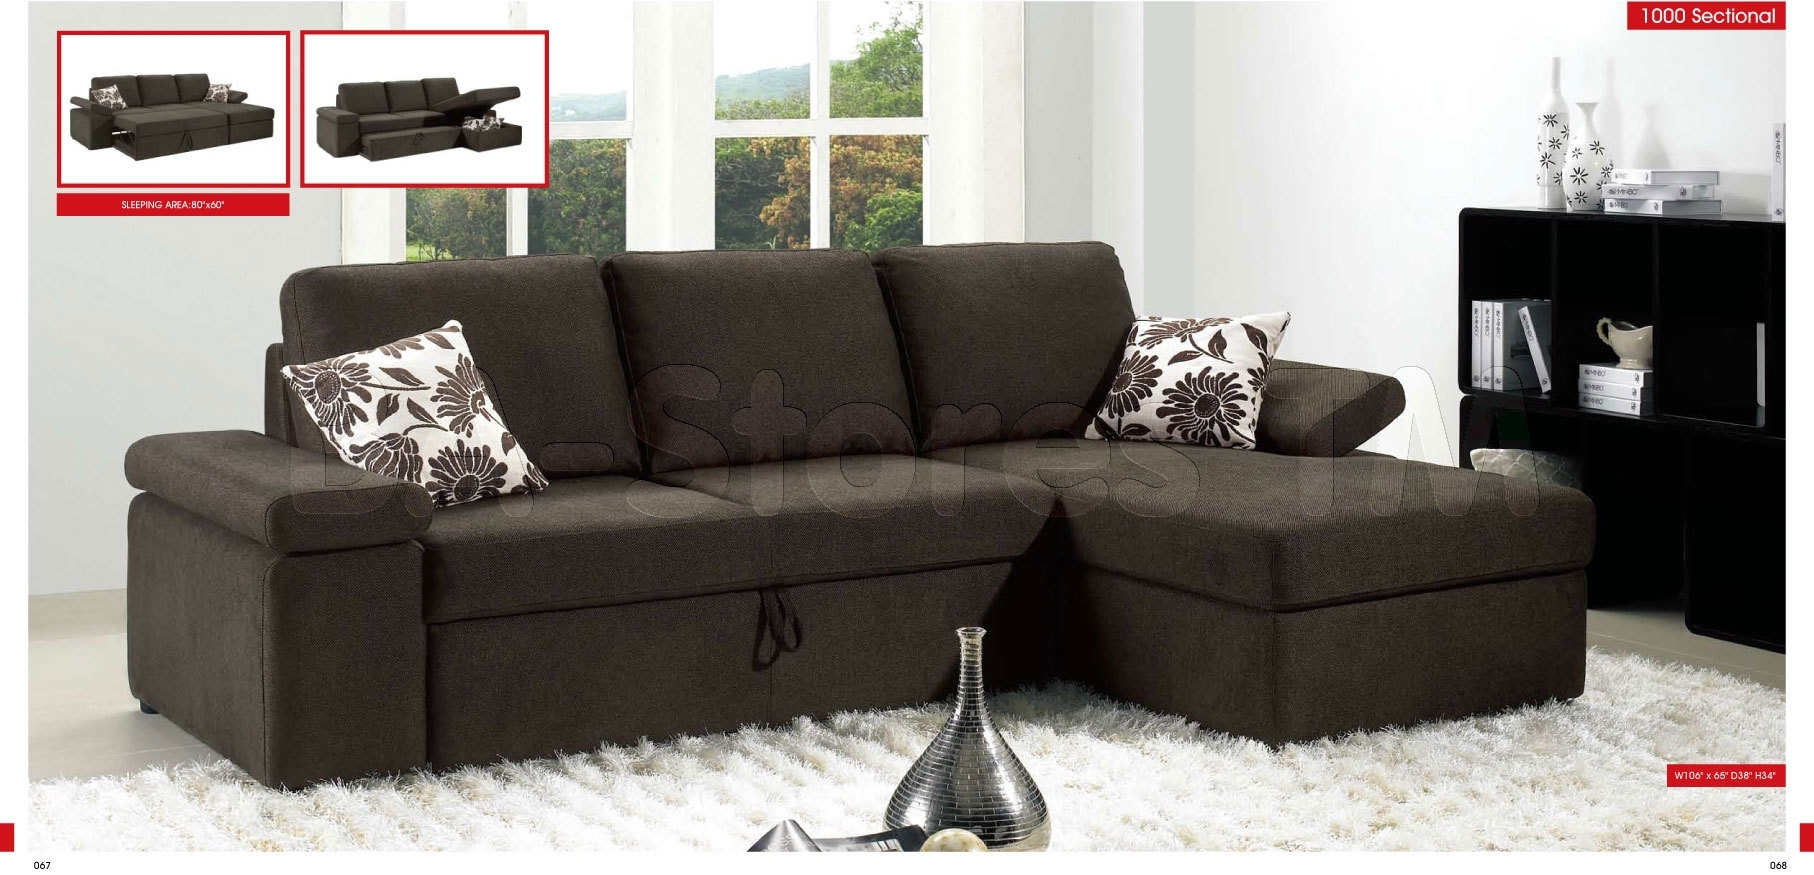 1000 Contemporary Sectional Sofa Bed – $1,700.00 : Furniture Store Pertaining To Nyc Sectional Sofas (Gallery 10 of 10)